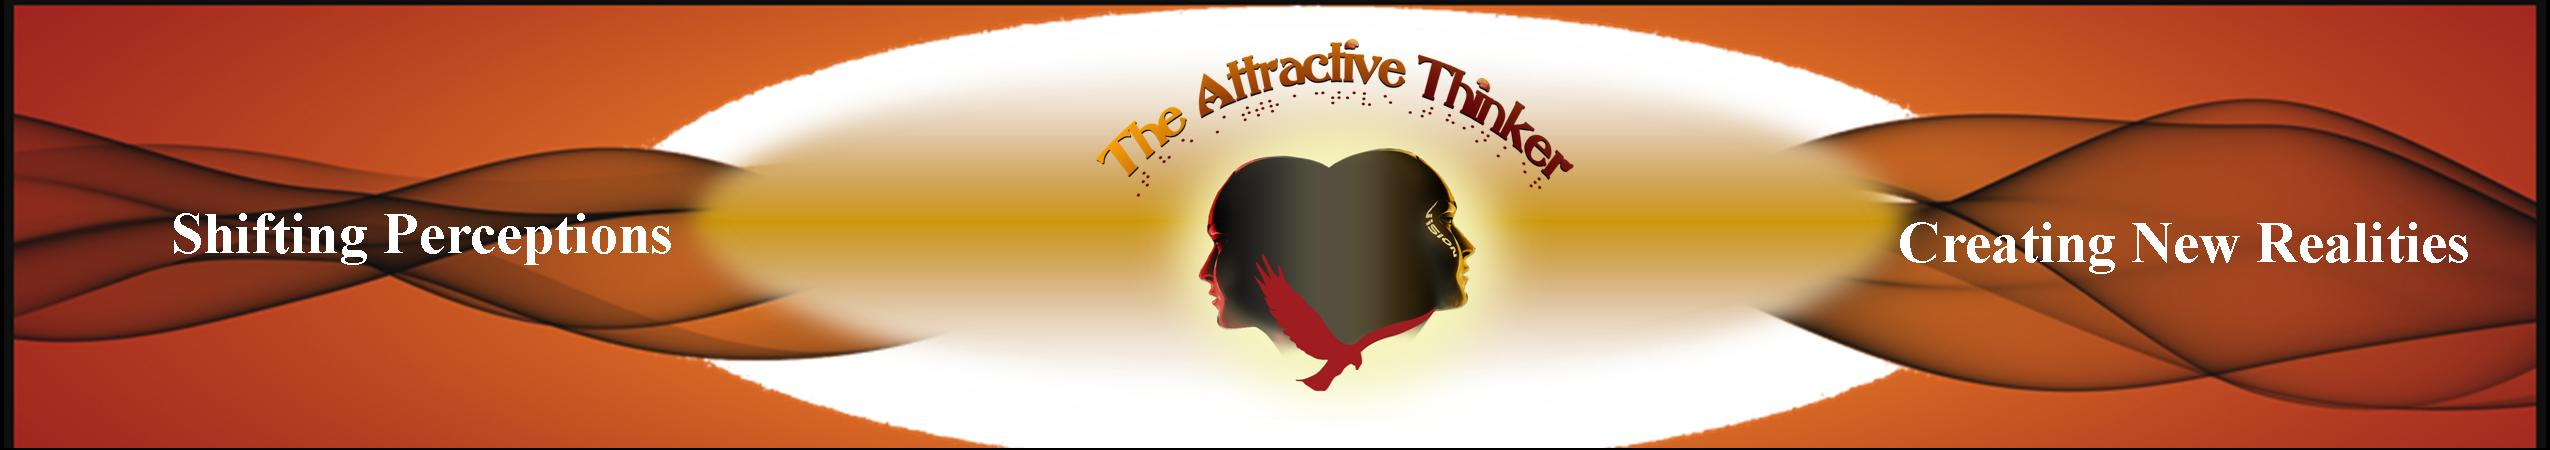 The Attractive Thinker Banner